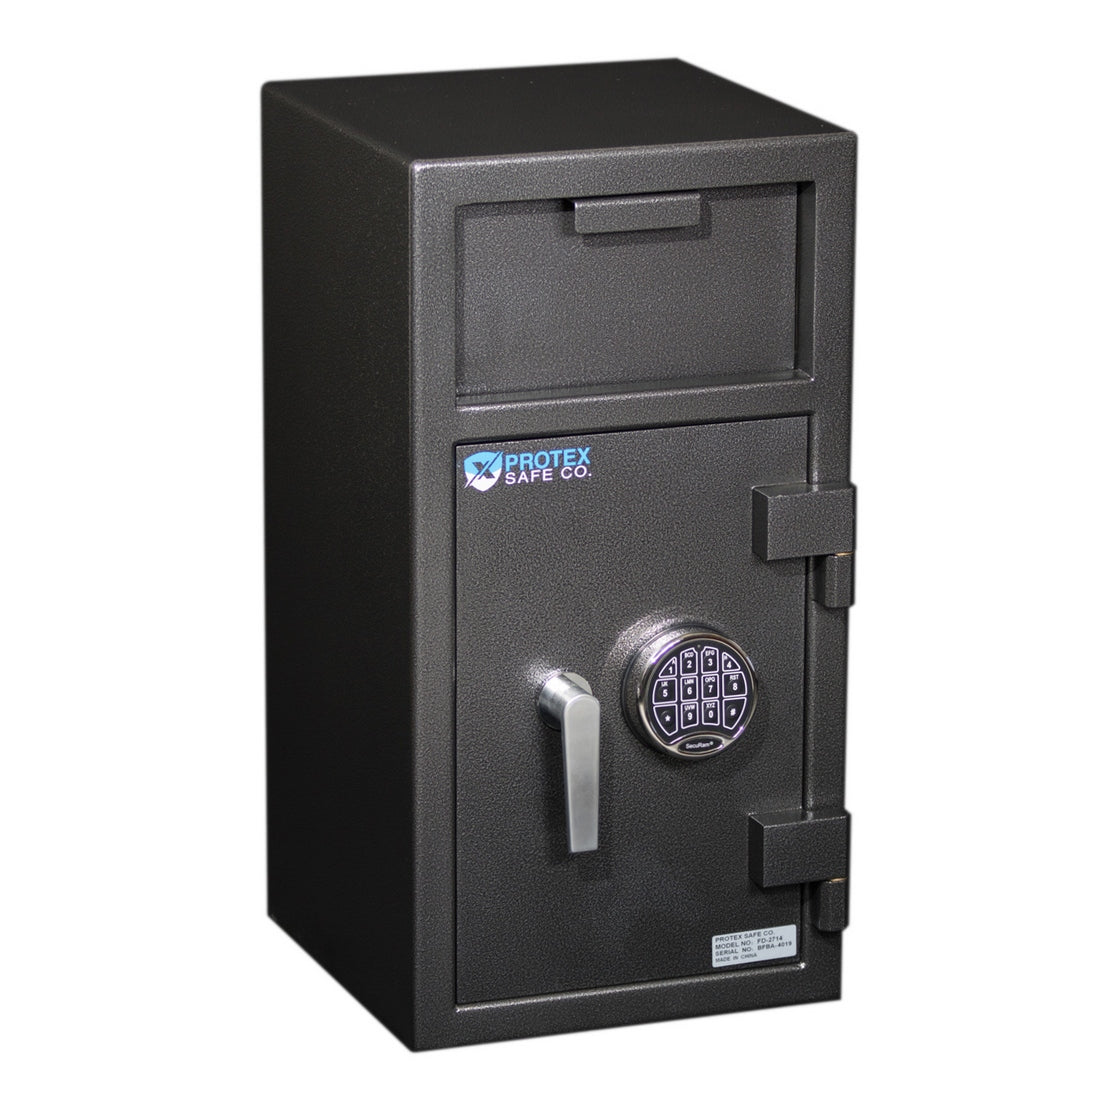 Protex Safe FD-2714 Large Front Loading Depository Safe